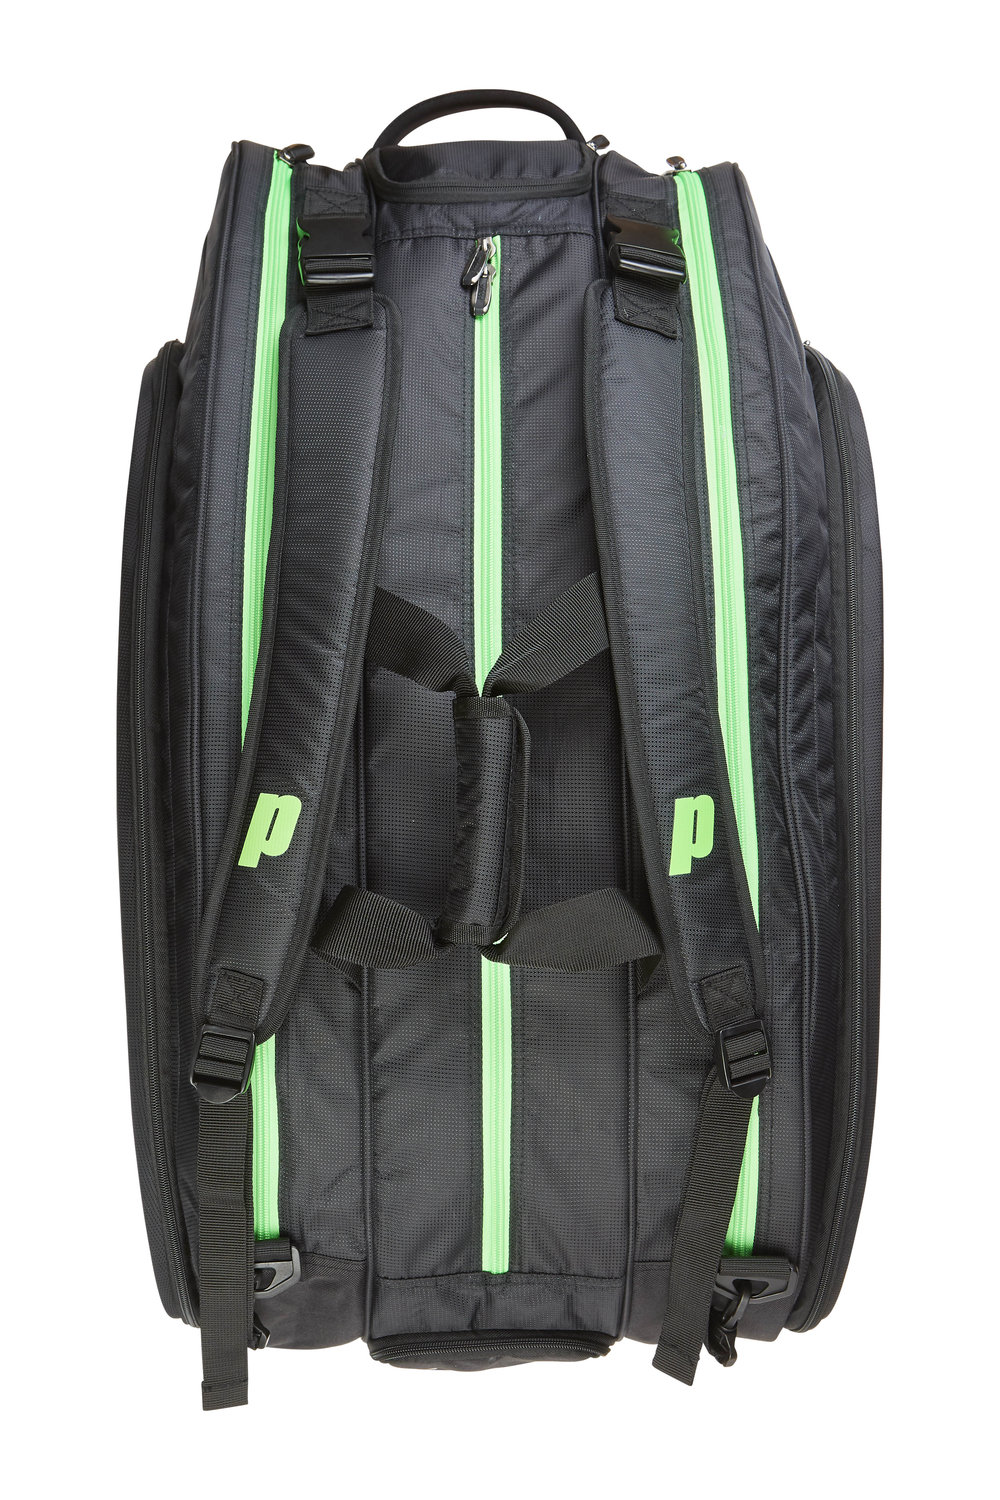 6P891302_Tour_Slam_Bag_TOP.jpg